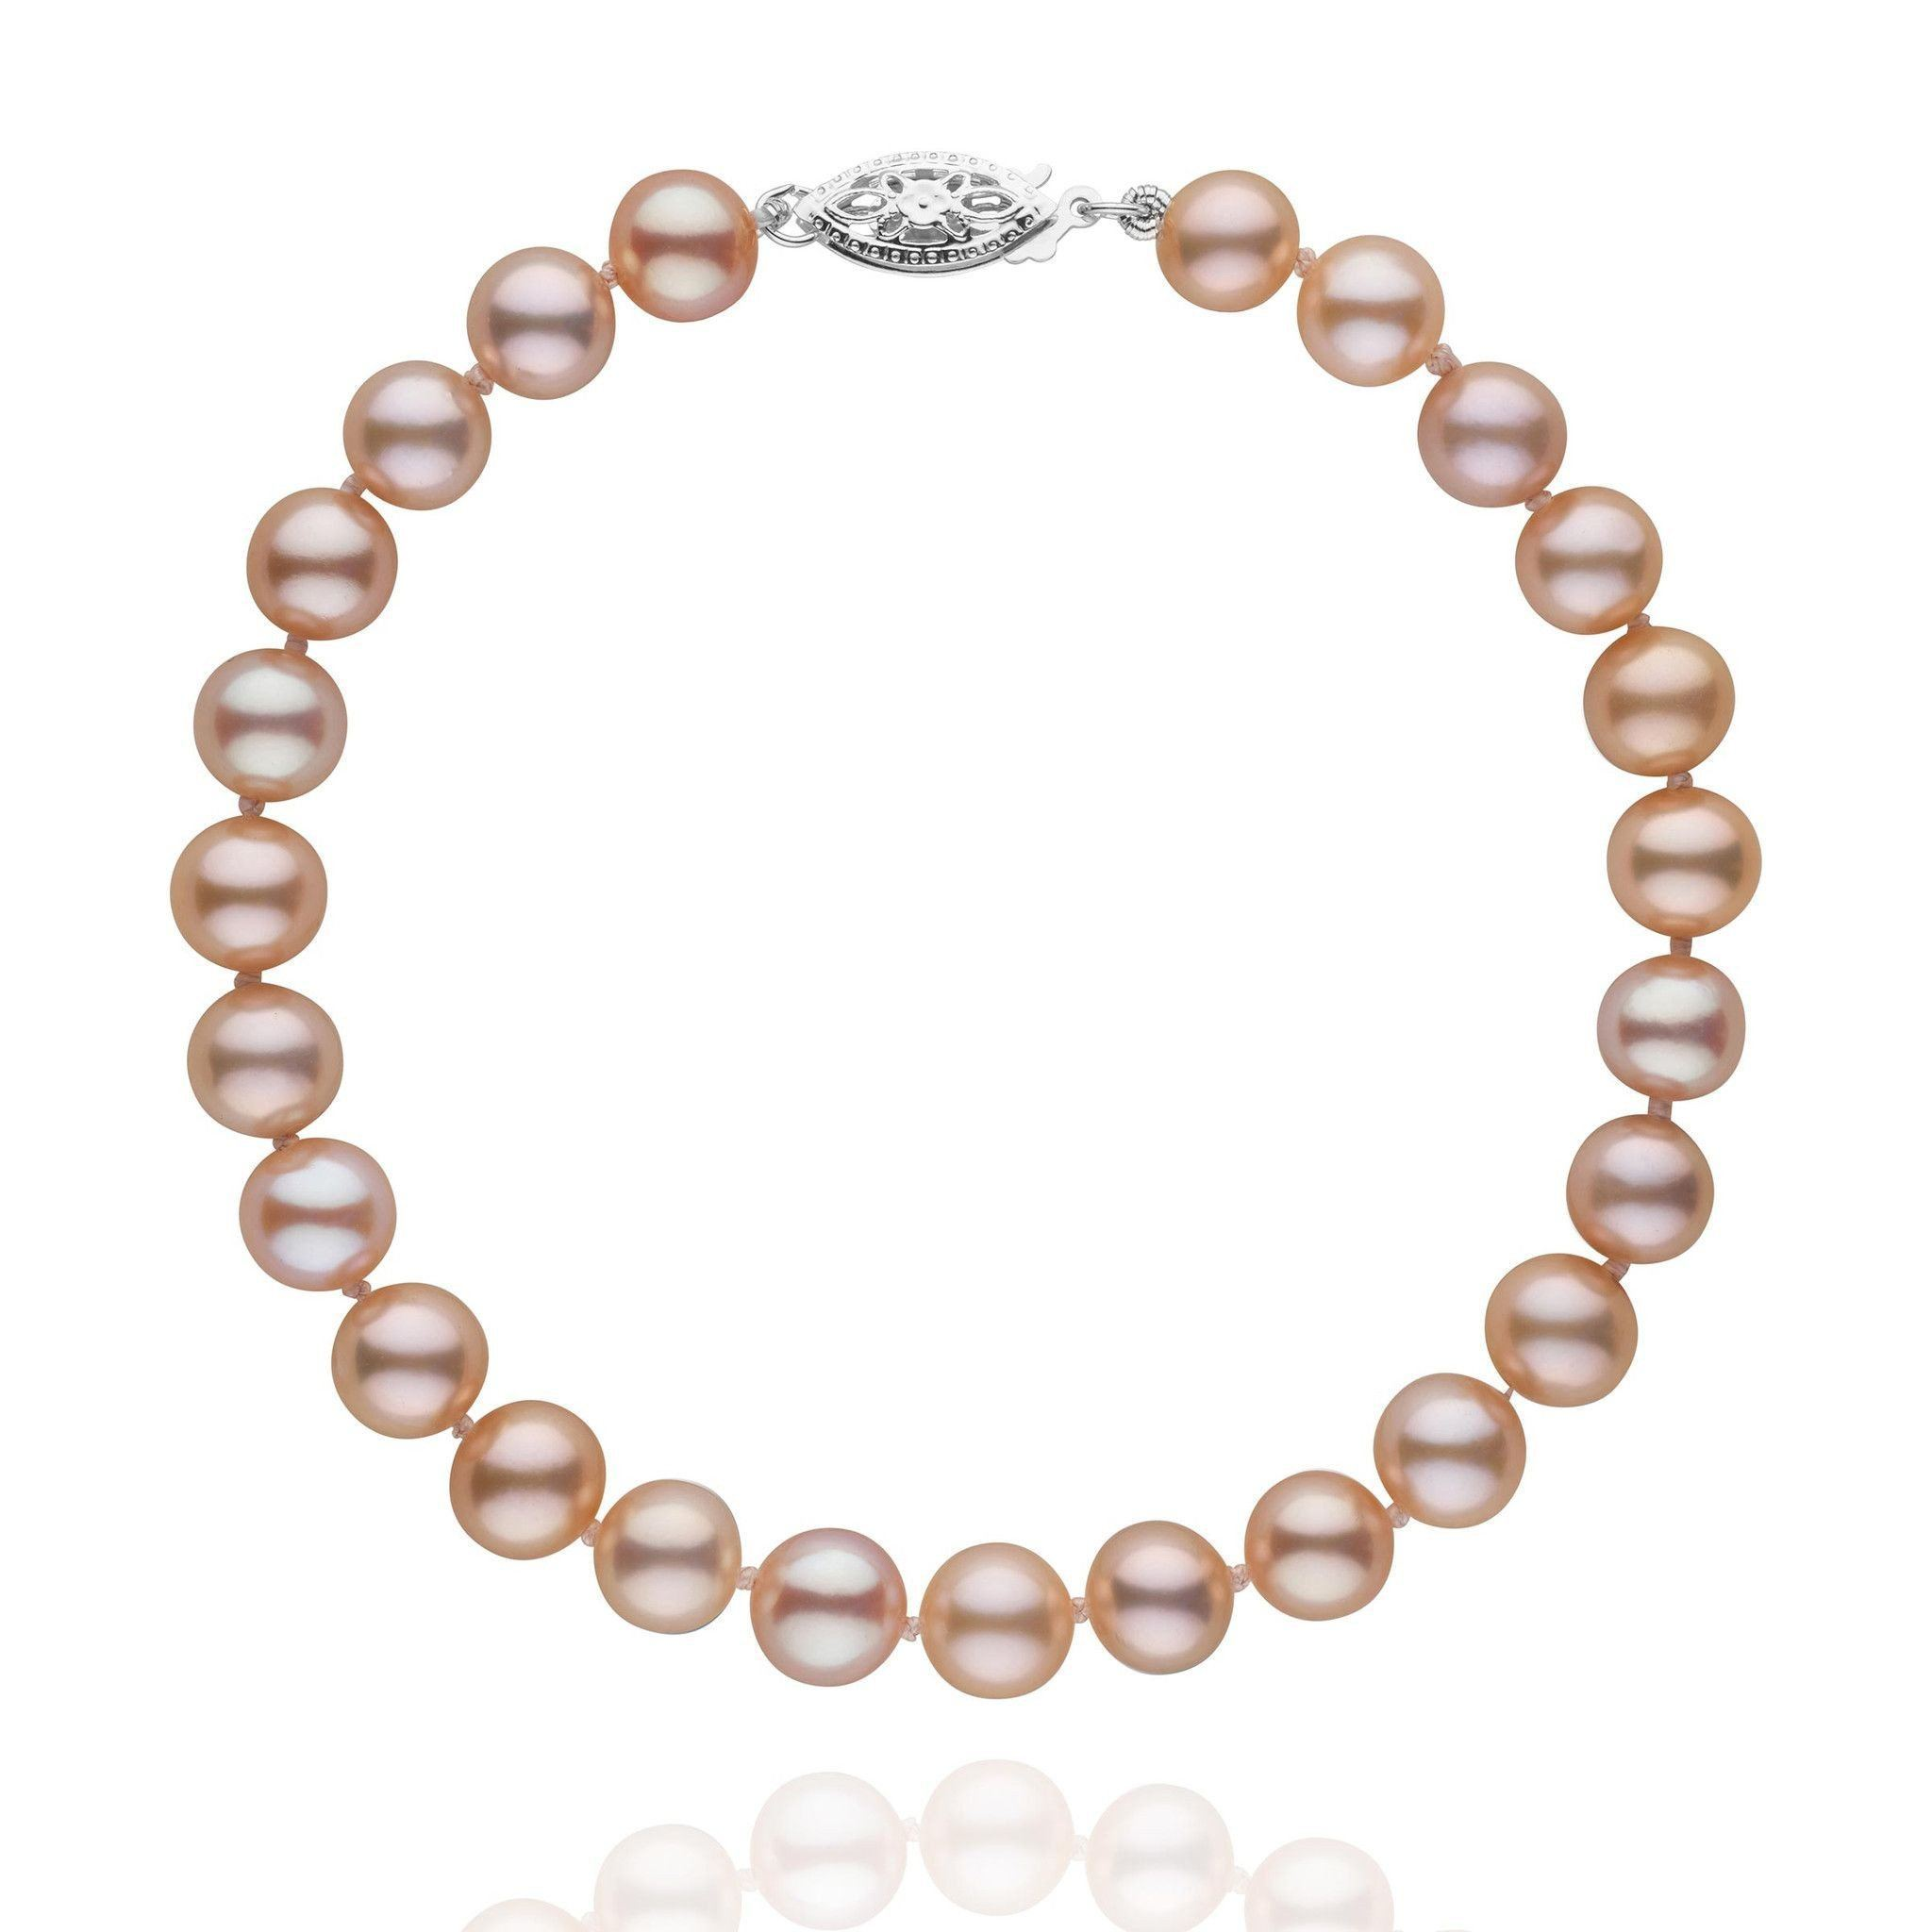 6.5-7.0 mm Pink to Peach Freshwater AAA Pearl Bracelet